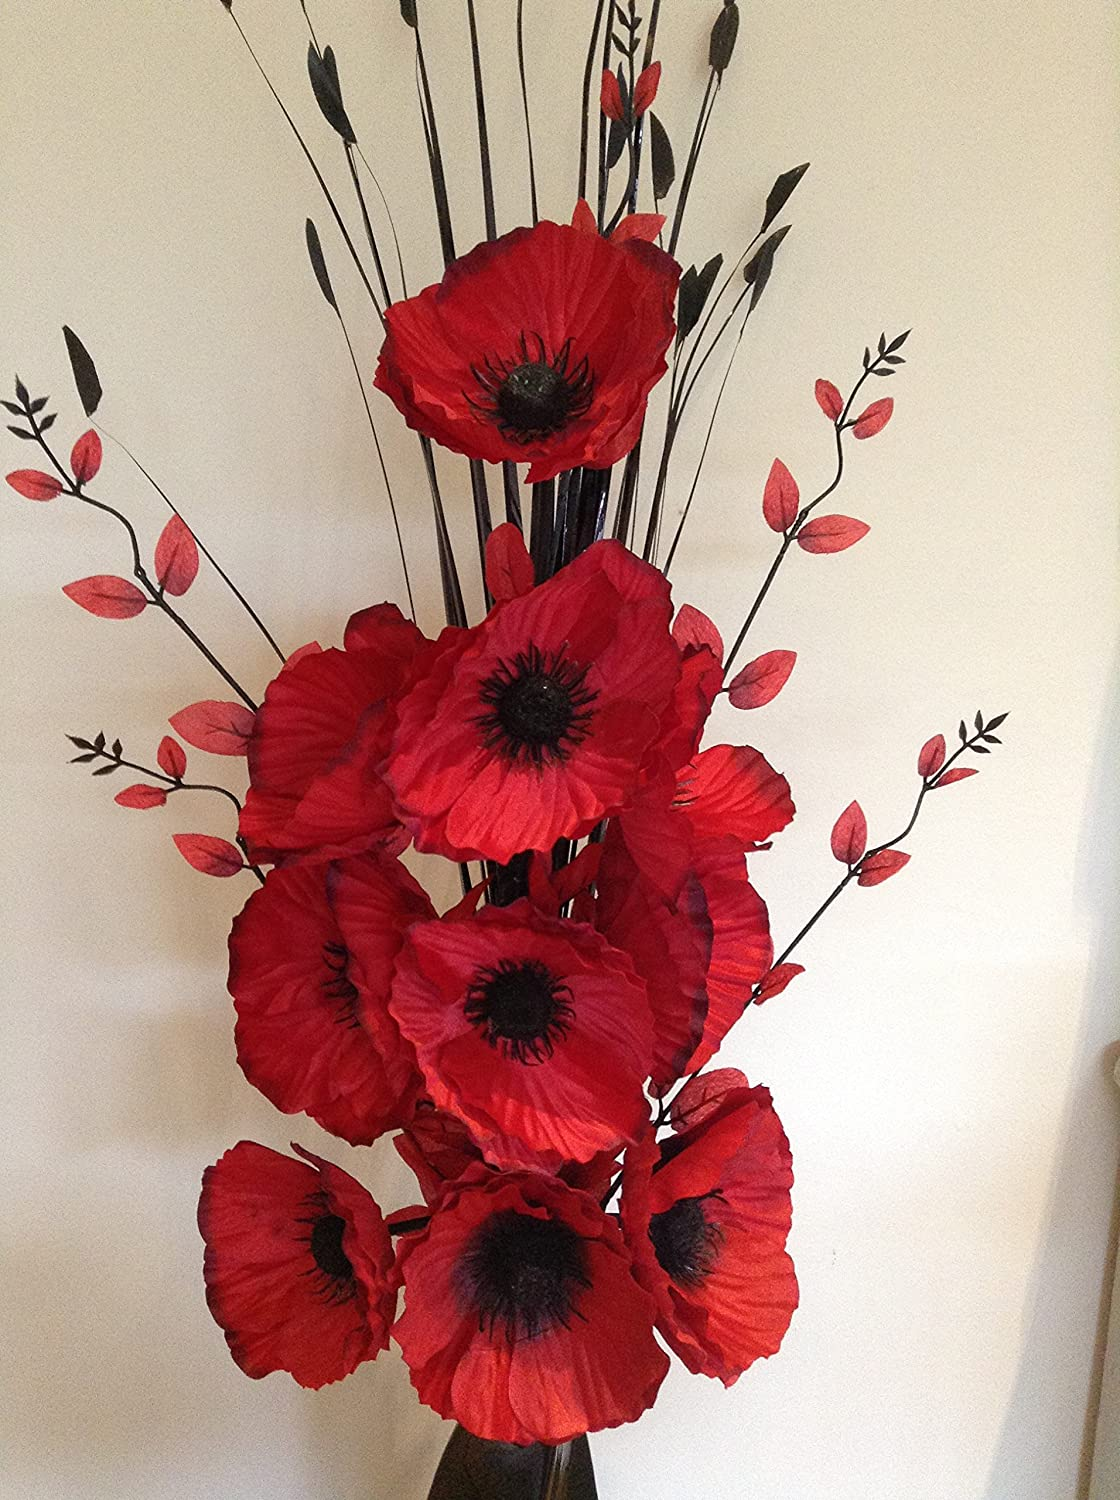 Artificial Silk Flower Arrangement In Red Poppies In Black Modern